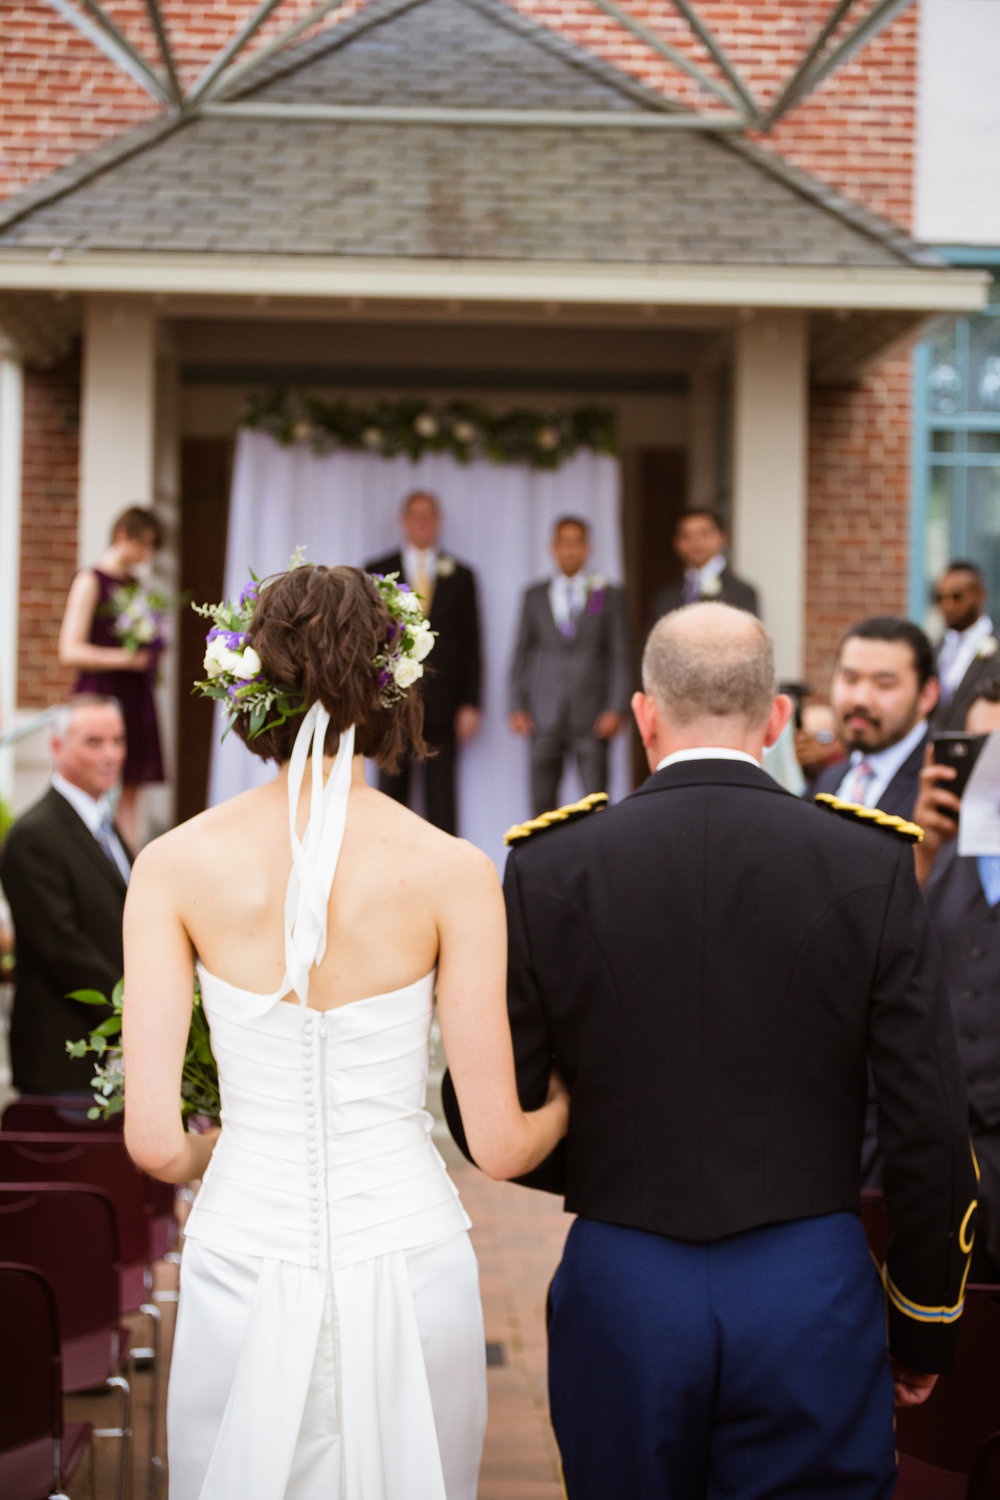 Blacano Wedding - Ceremony-20.jpg